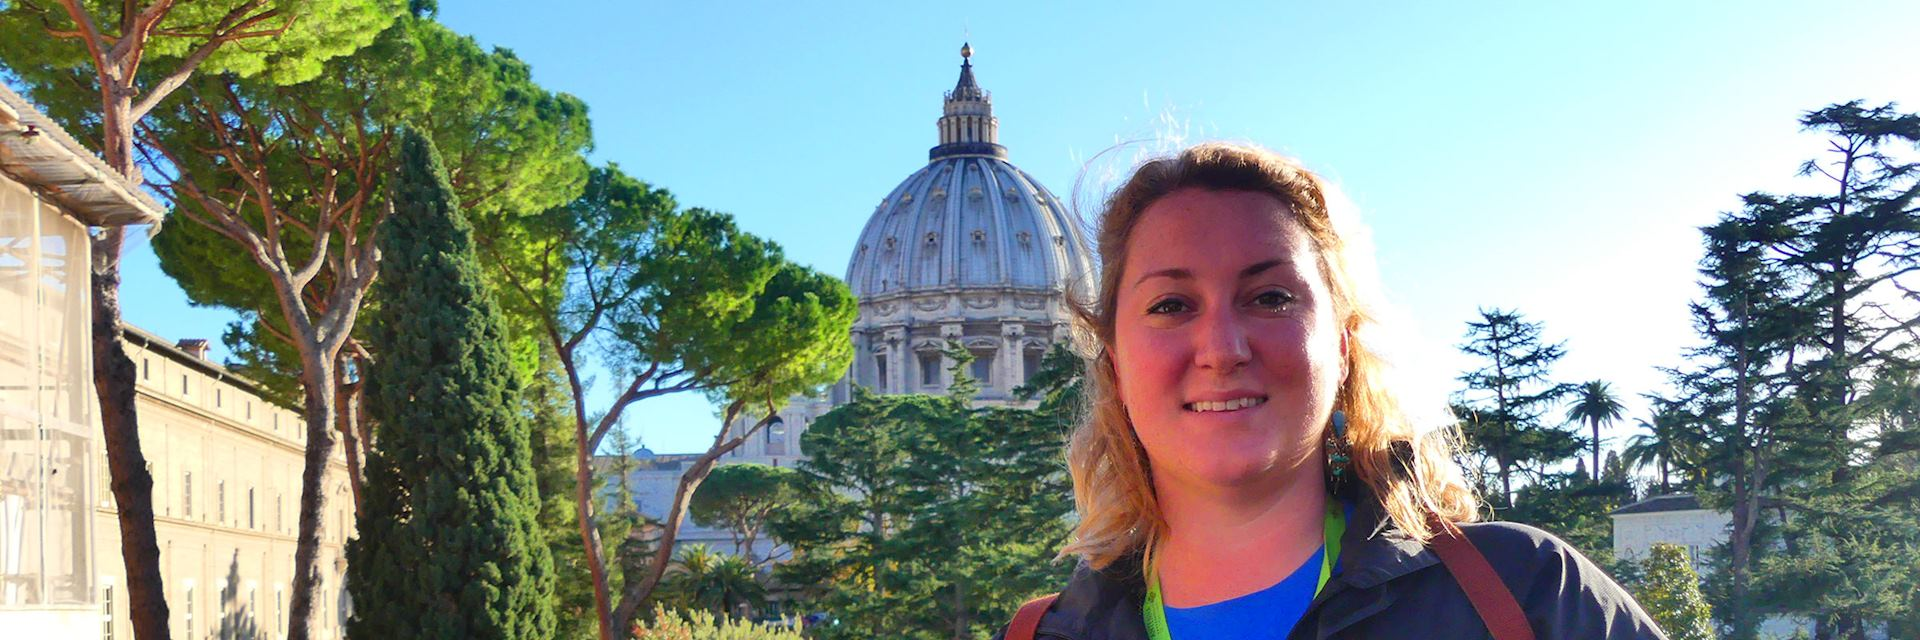 Cara visiting the Vatican City in Rome, Italy